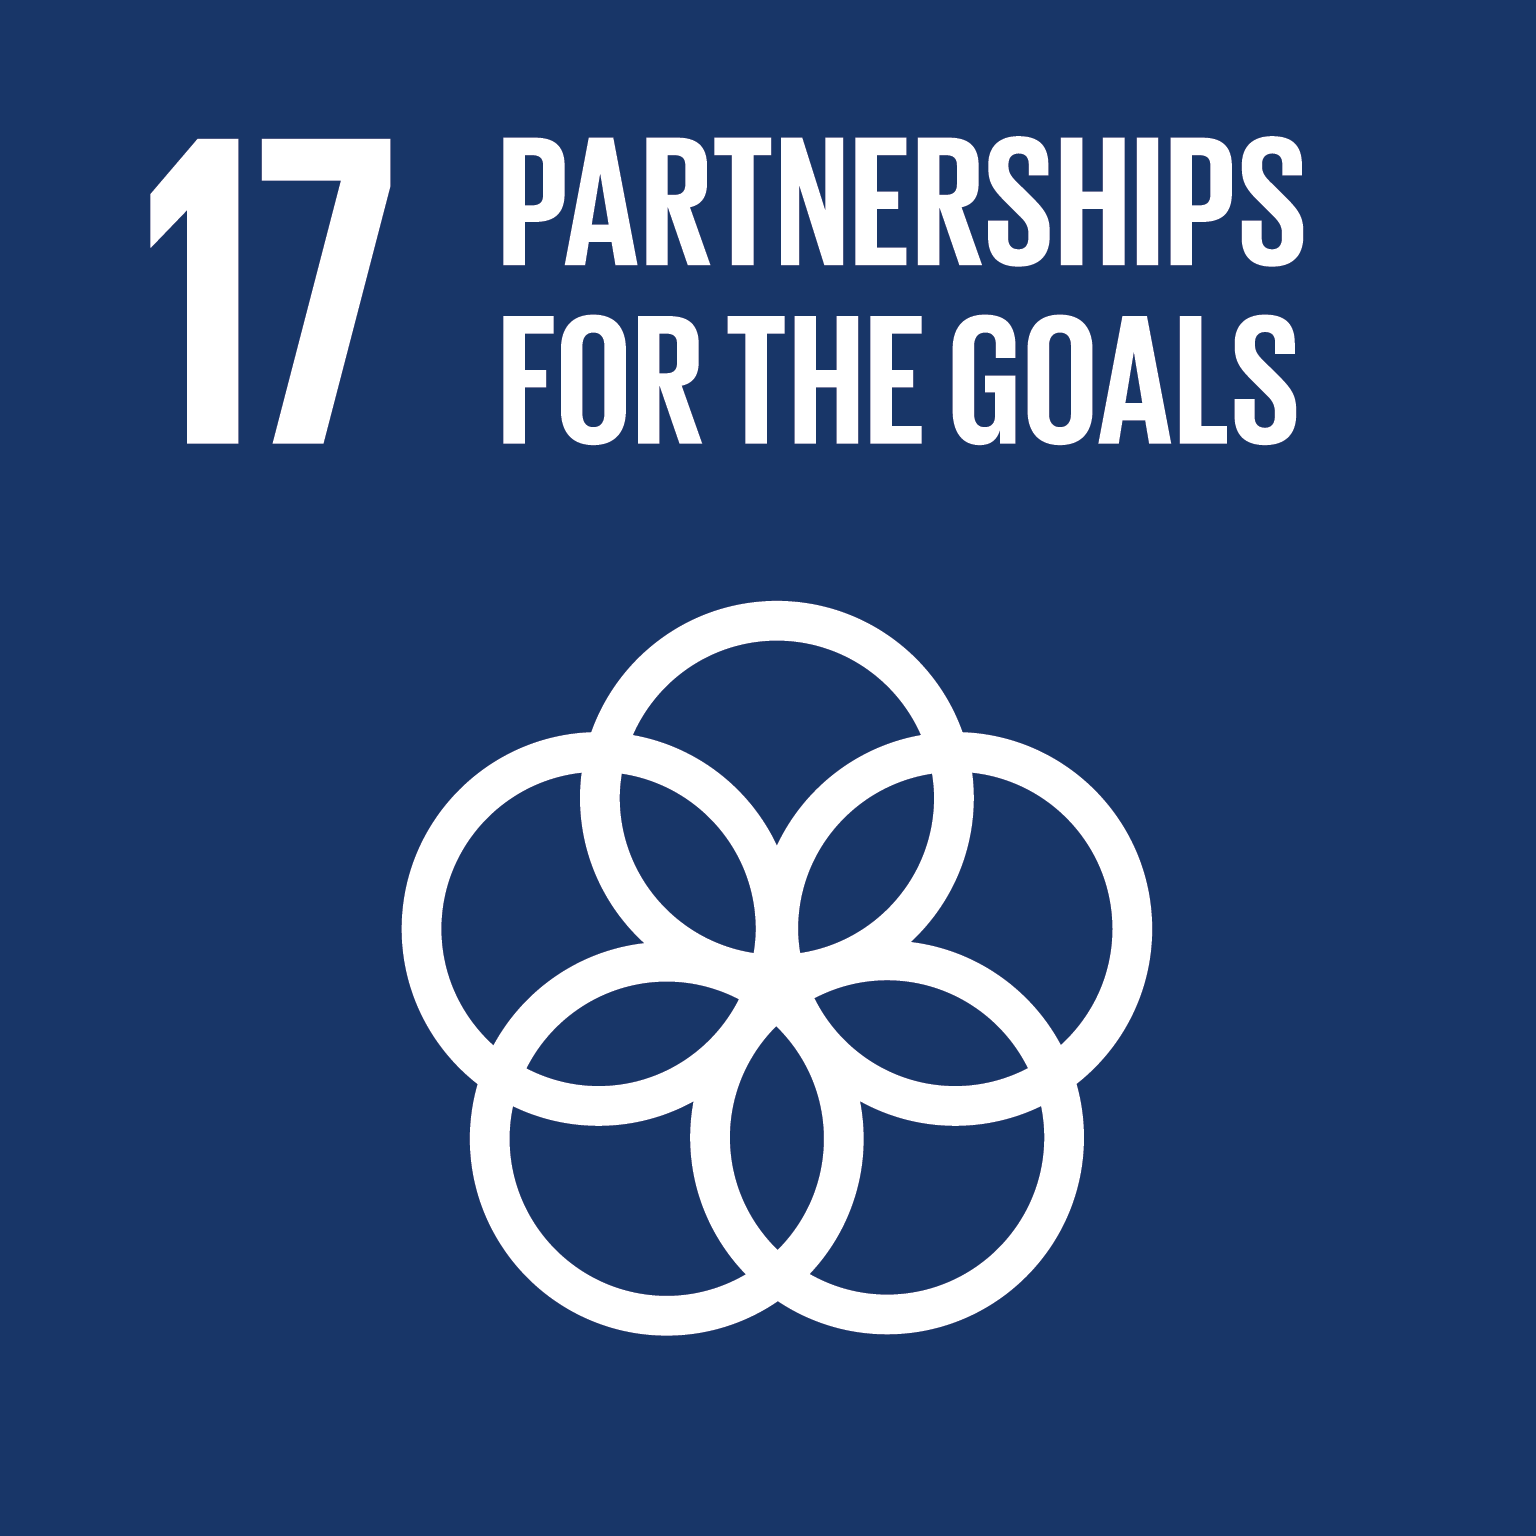 Partnerships for the goals (17)